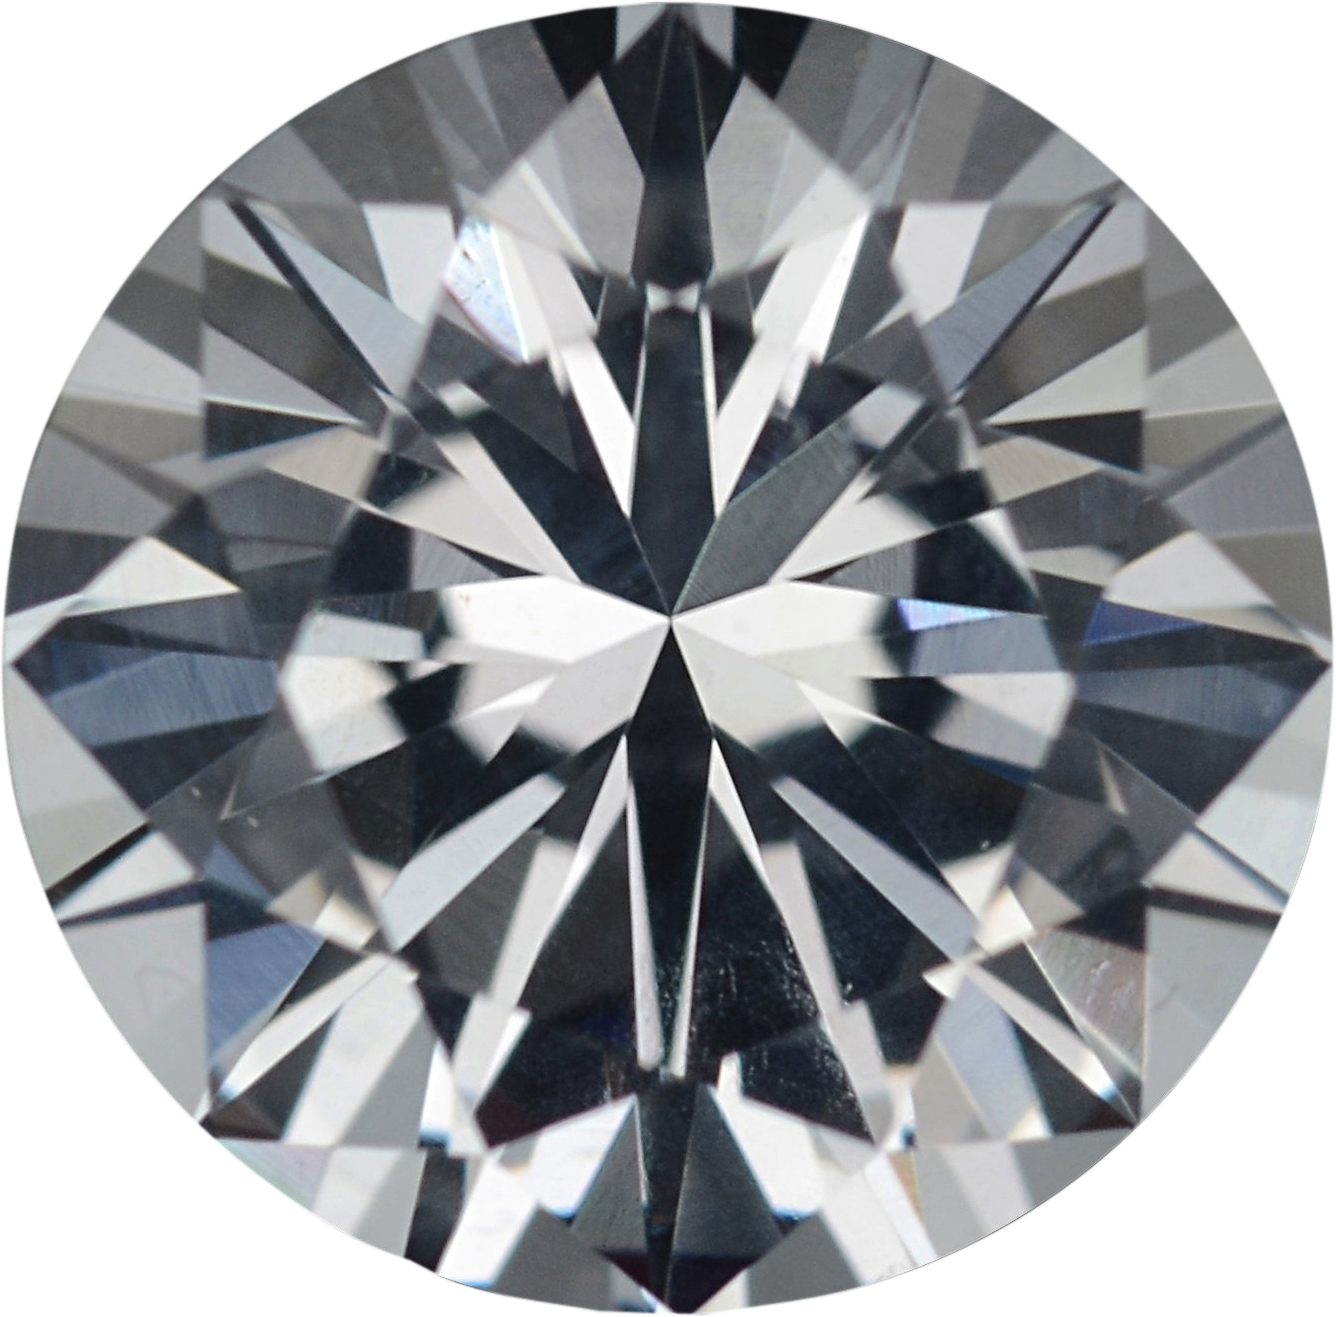 1.36 carats White Loose Sapphire Gemstone in Round Cut, 6.77 mm